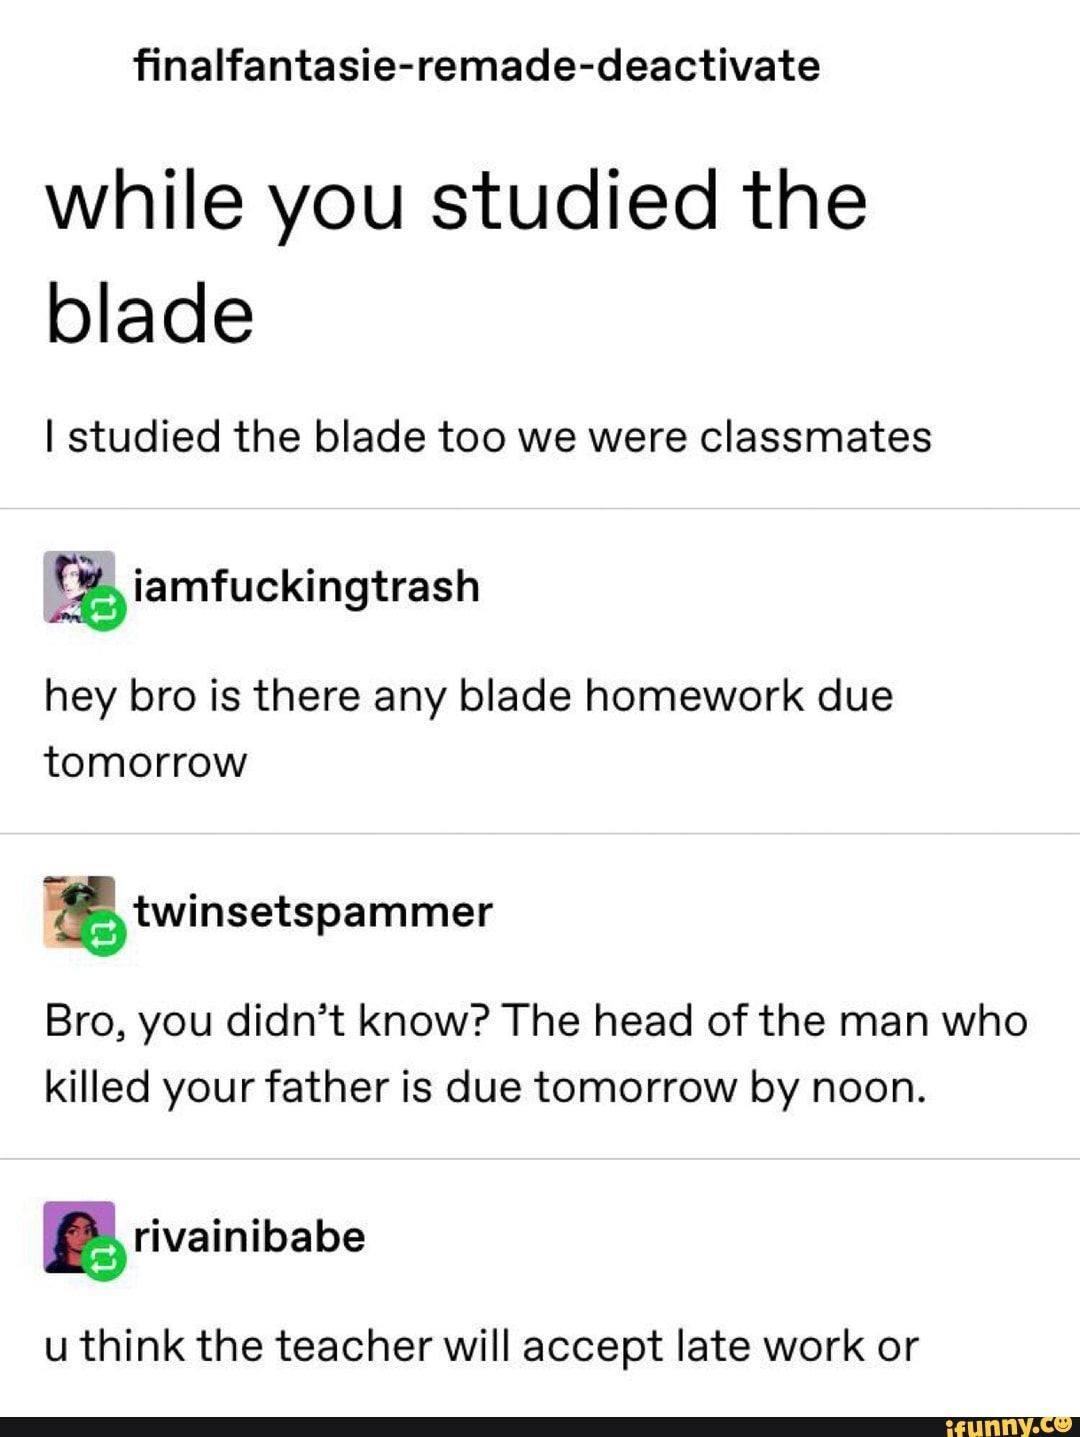 finalfantasie-remade-deactivate while you studied the blade I studied the blade too we were classmates hey bro is there any blade homework due tomorrow gtwinsetspammer Bro, you didn't know? The head of the man who killed yourfather is due tomorrow by noon. u think the t... #bladedanceofelementalers #animemanga #dungeonsanddragons #tumblrpost #tumblr #nalfantasie #remade #deactivate #while #studied #blade #too #were #classmates #hey #bro #due #tomorrow #gtwinsetspammer #didnt #the #head #pic